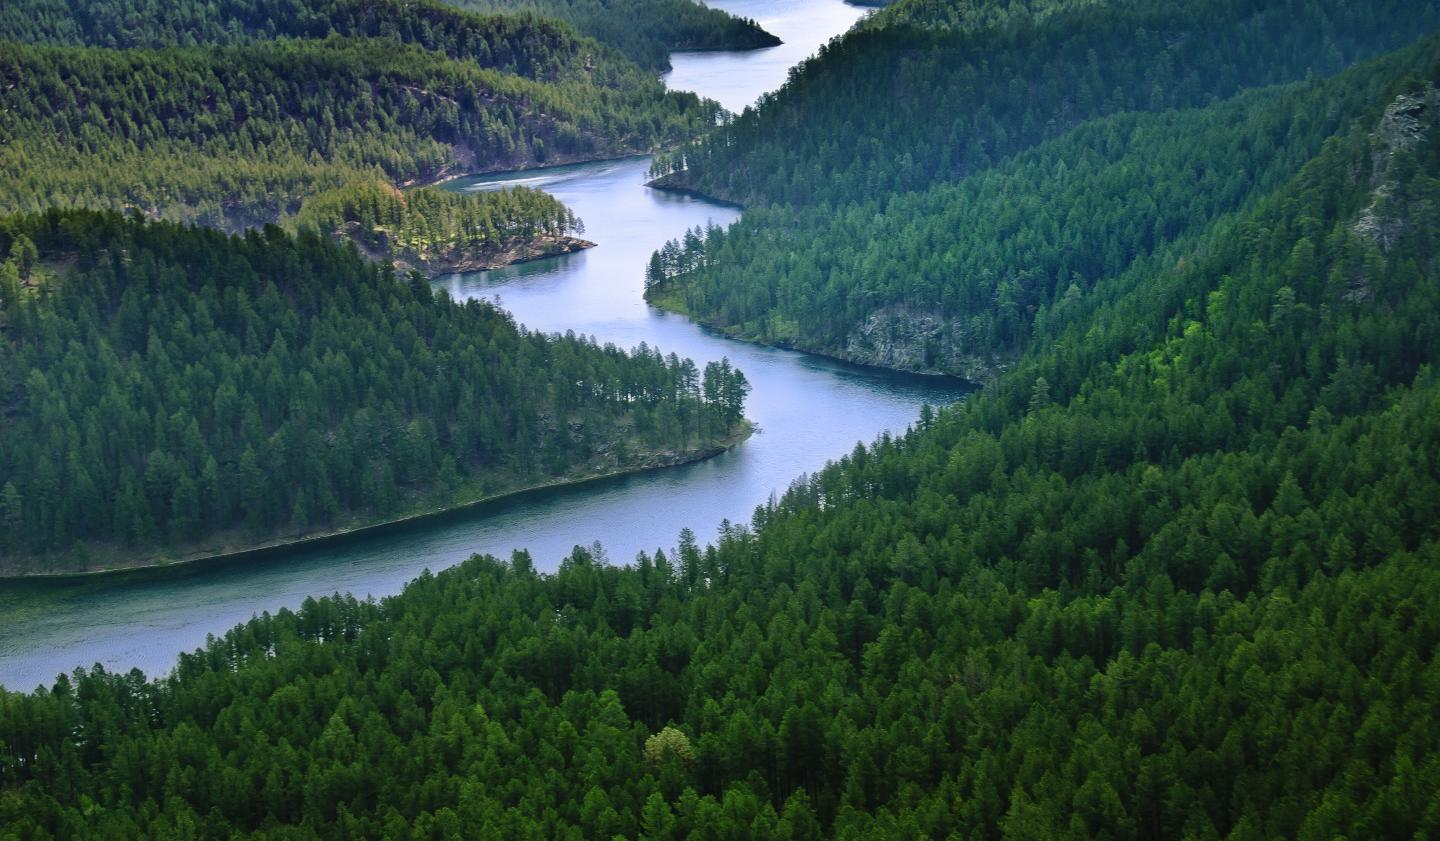 7 Unexpected Things Youll See in the Black Hills National Forest